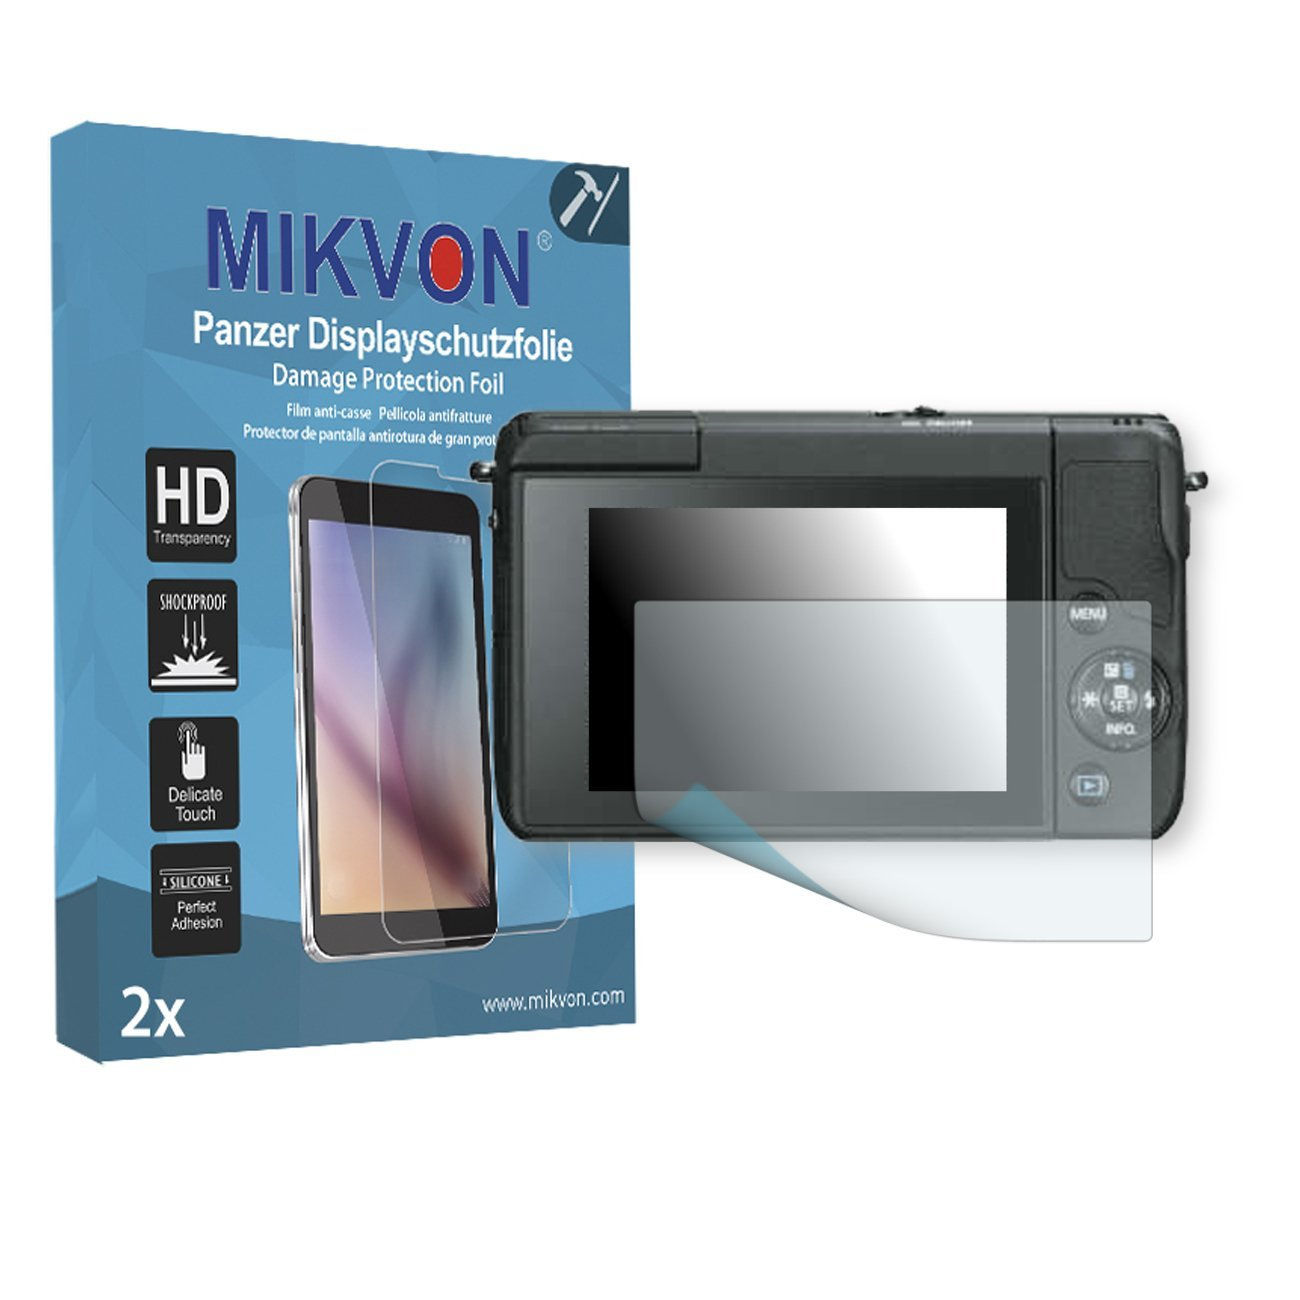 2x Mikvon Armor Screen Protector for Canon EOS M10 screen fracture protection film - Retail Package with accessories